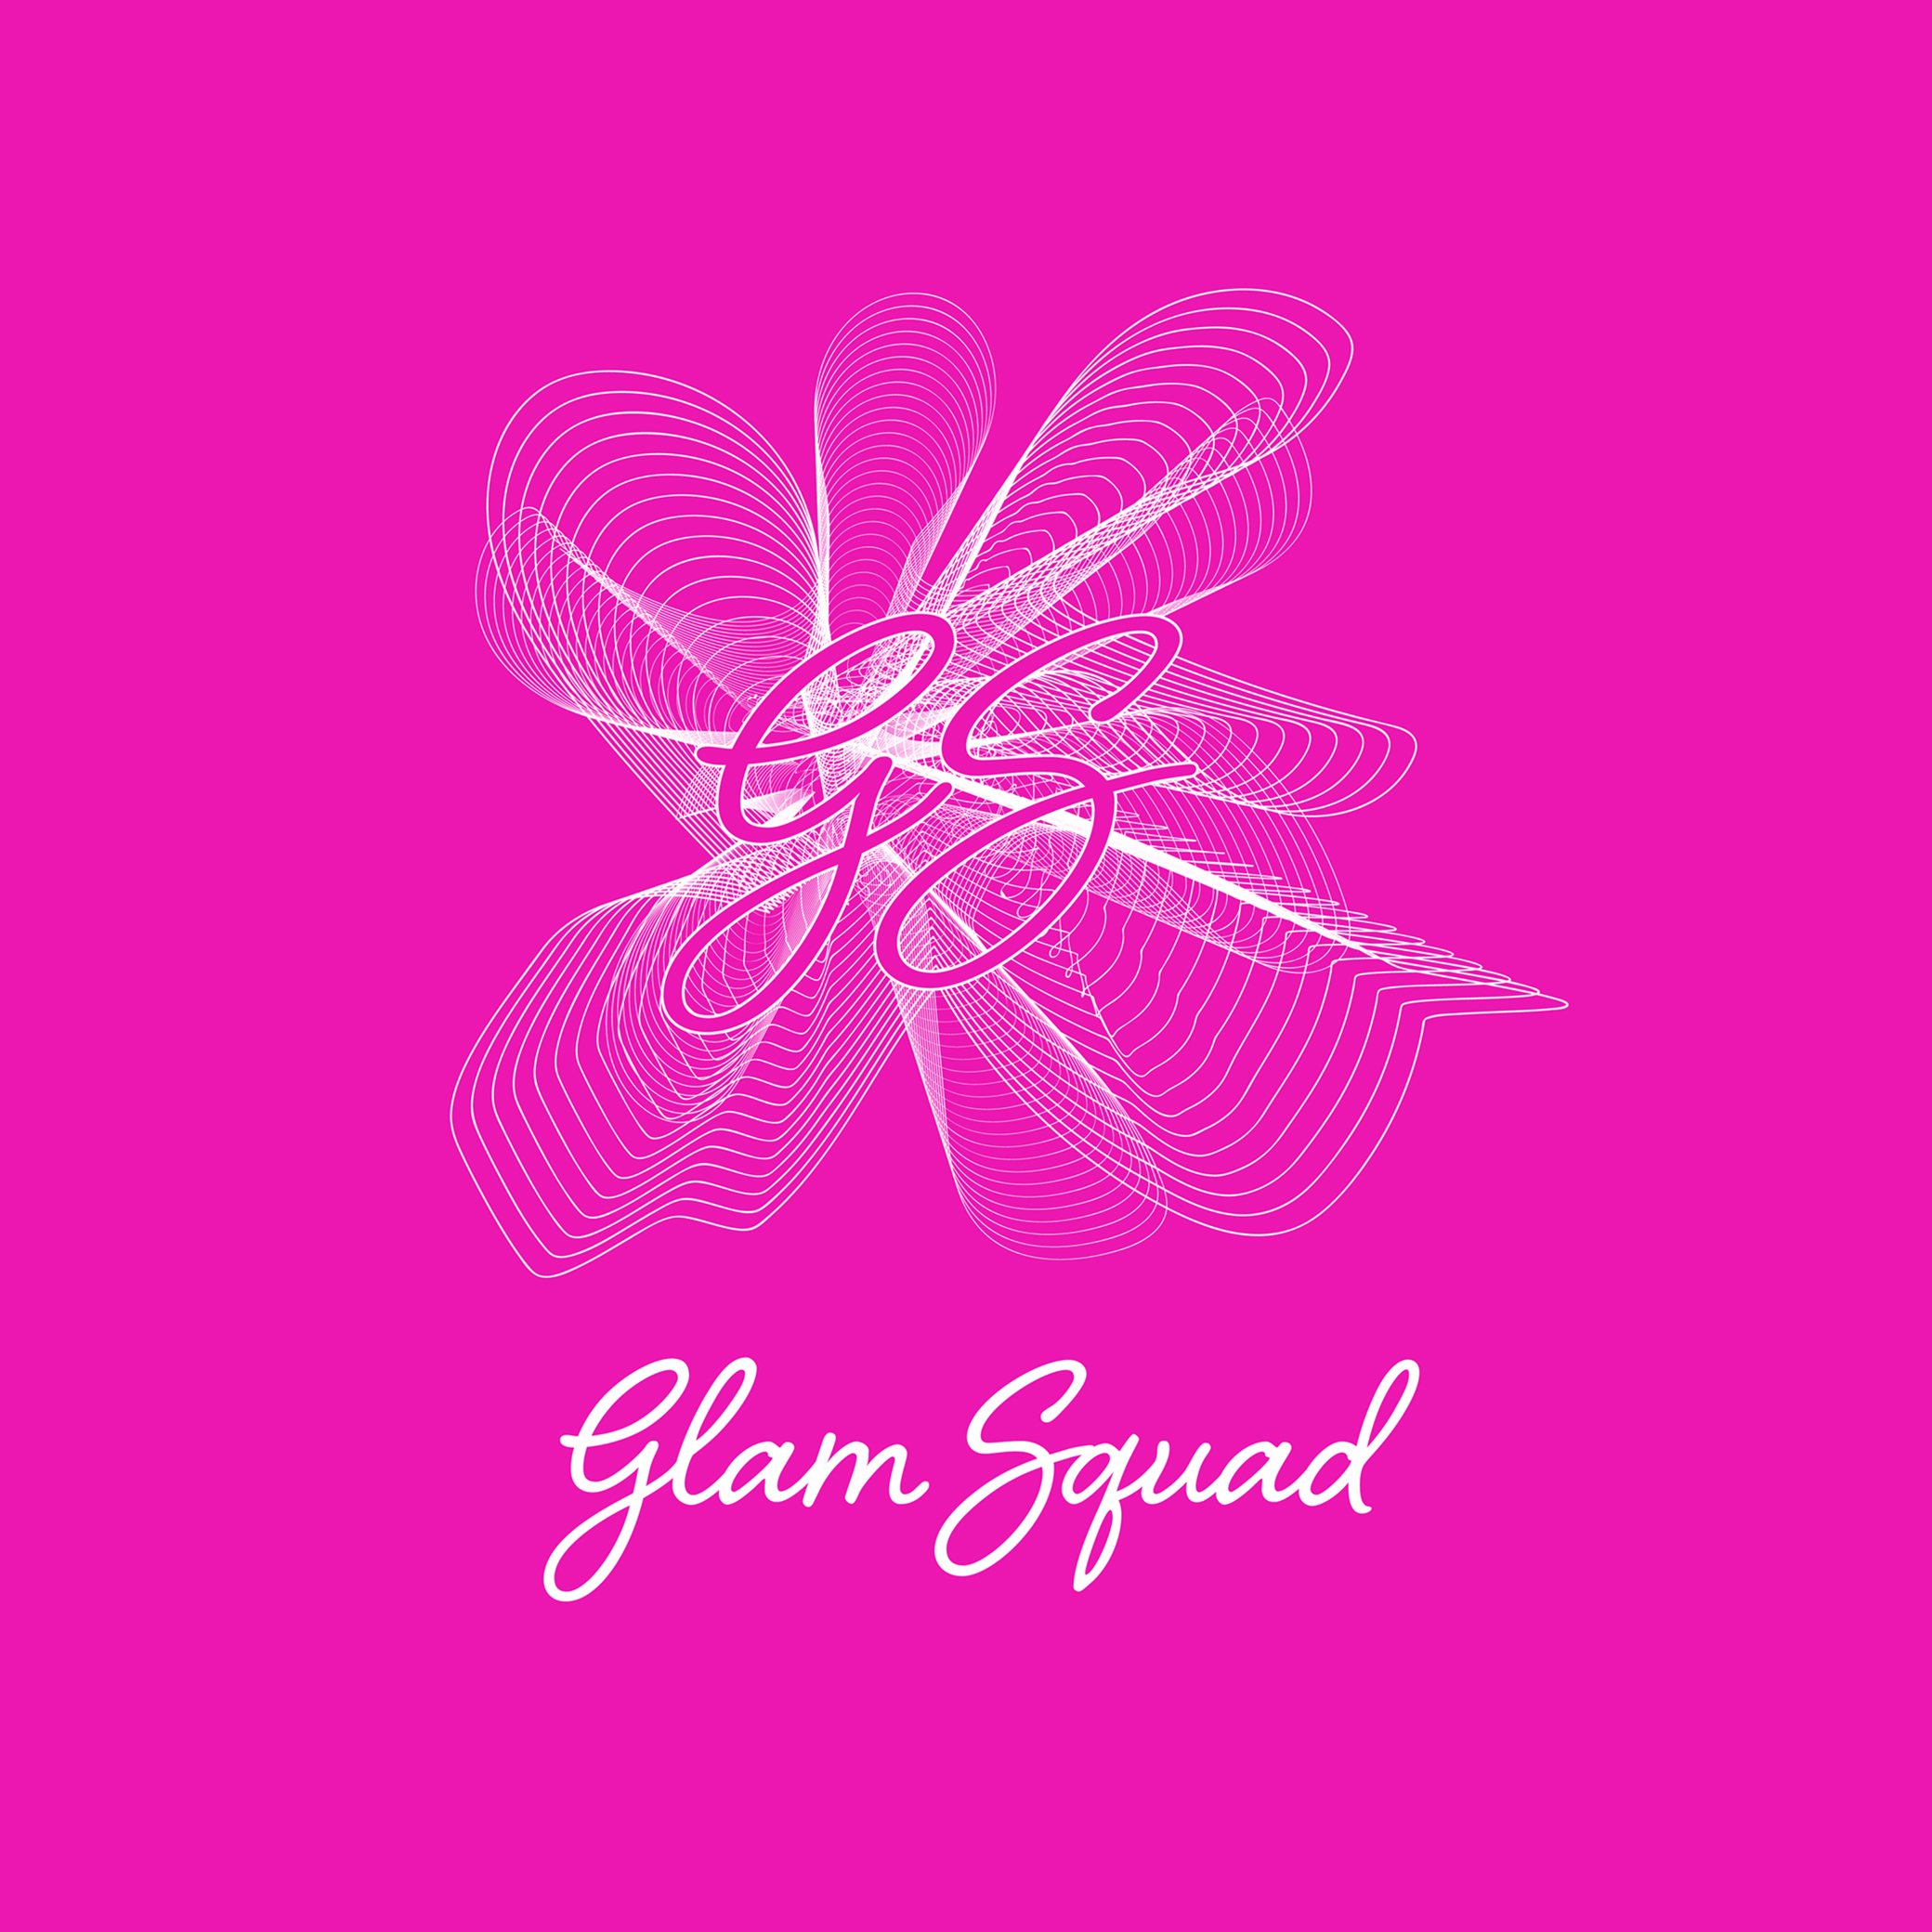 Pink design that says Glam Squad